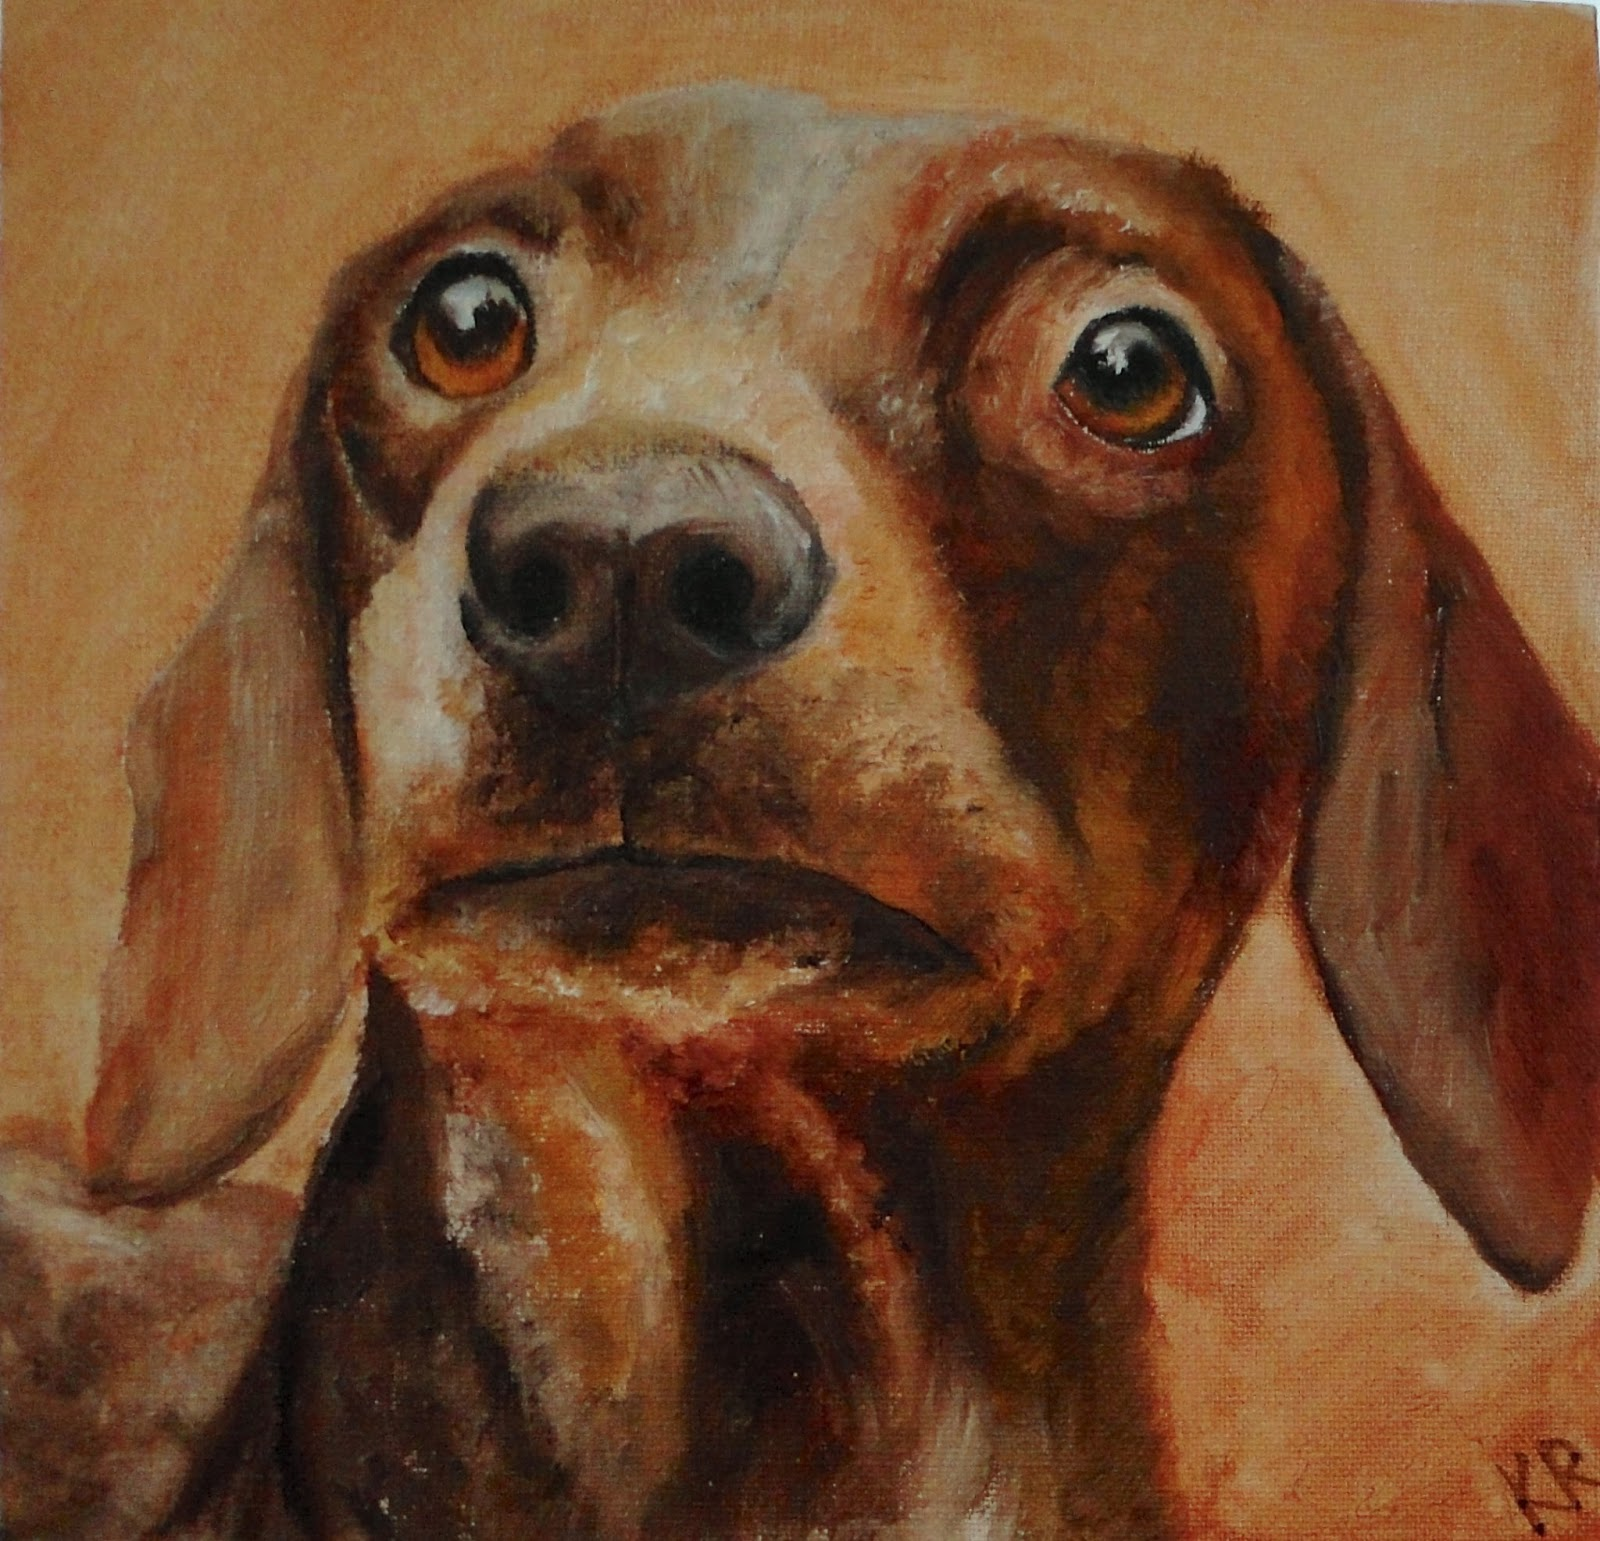 Dachshund oil painting, a pet portrait by Karen